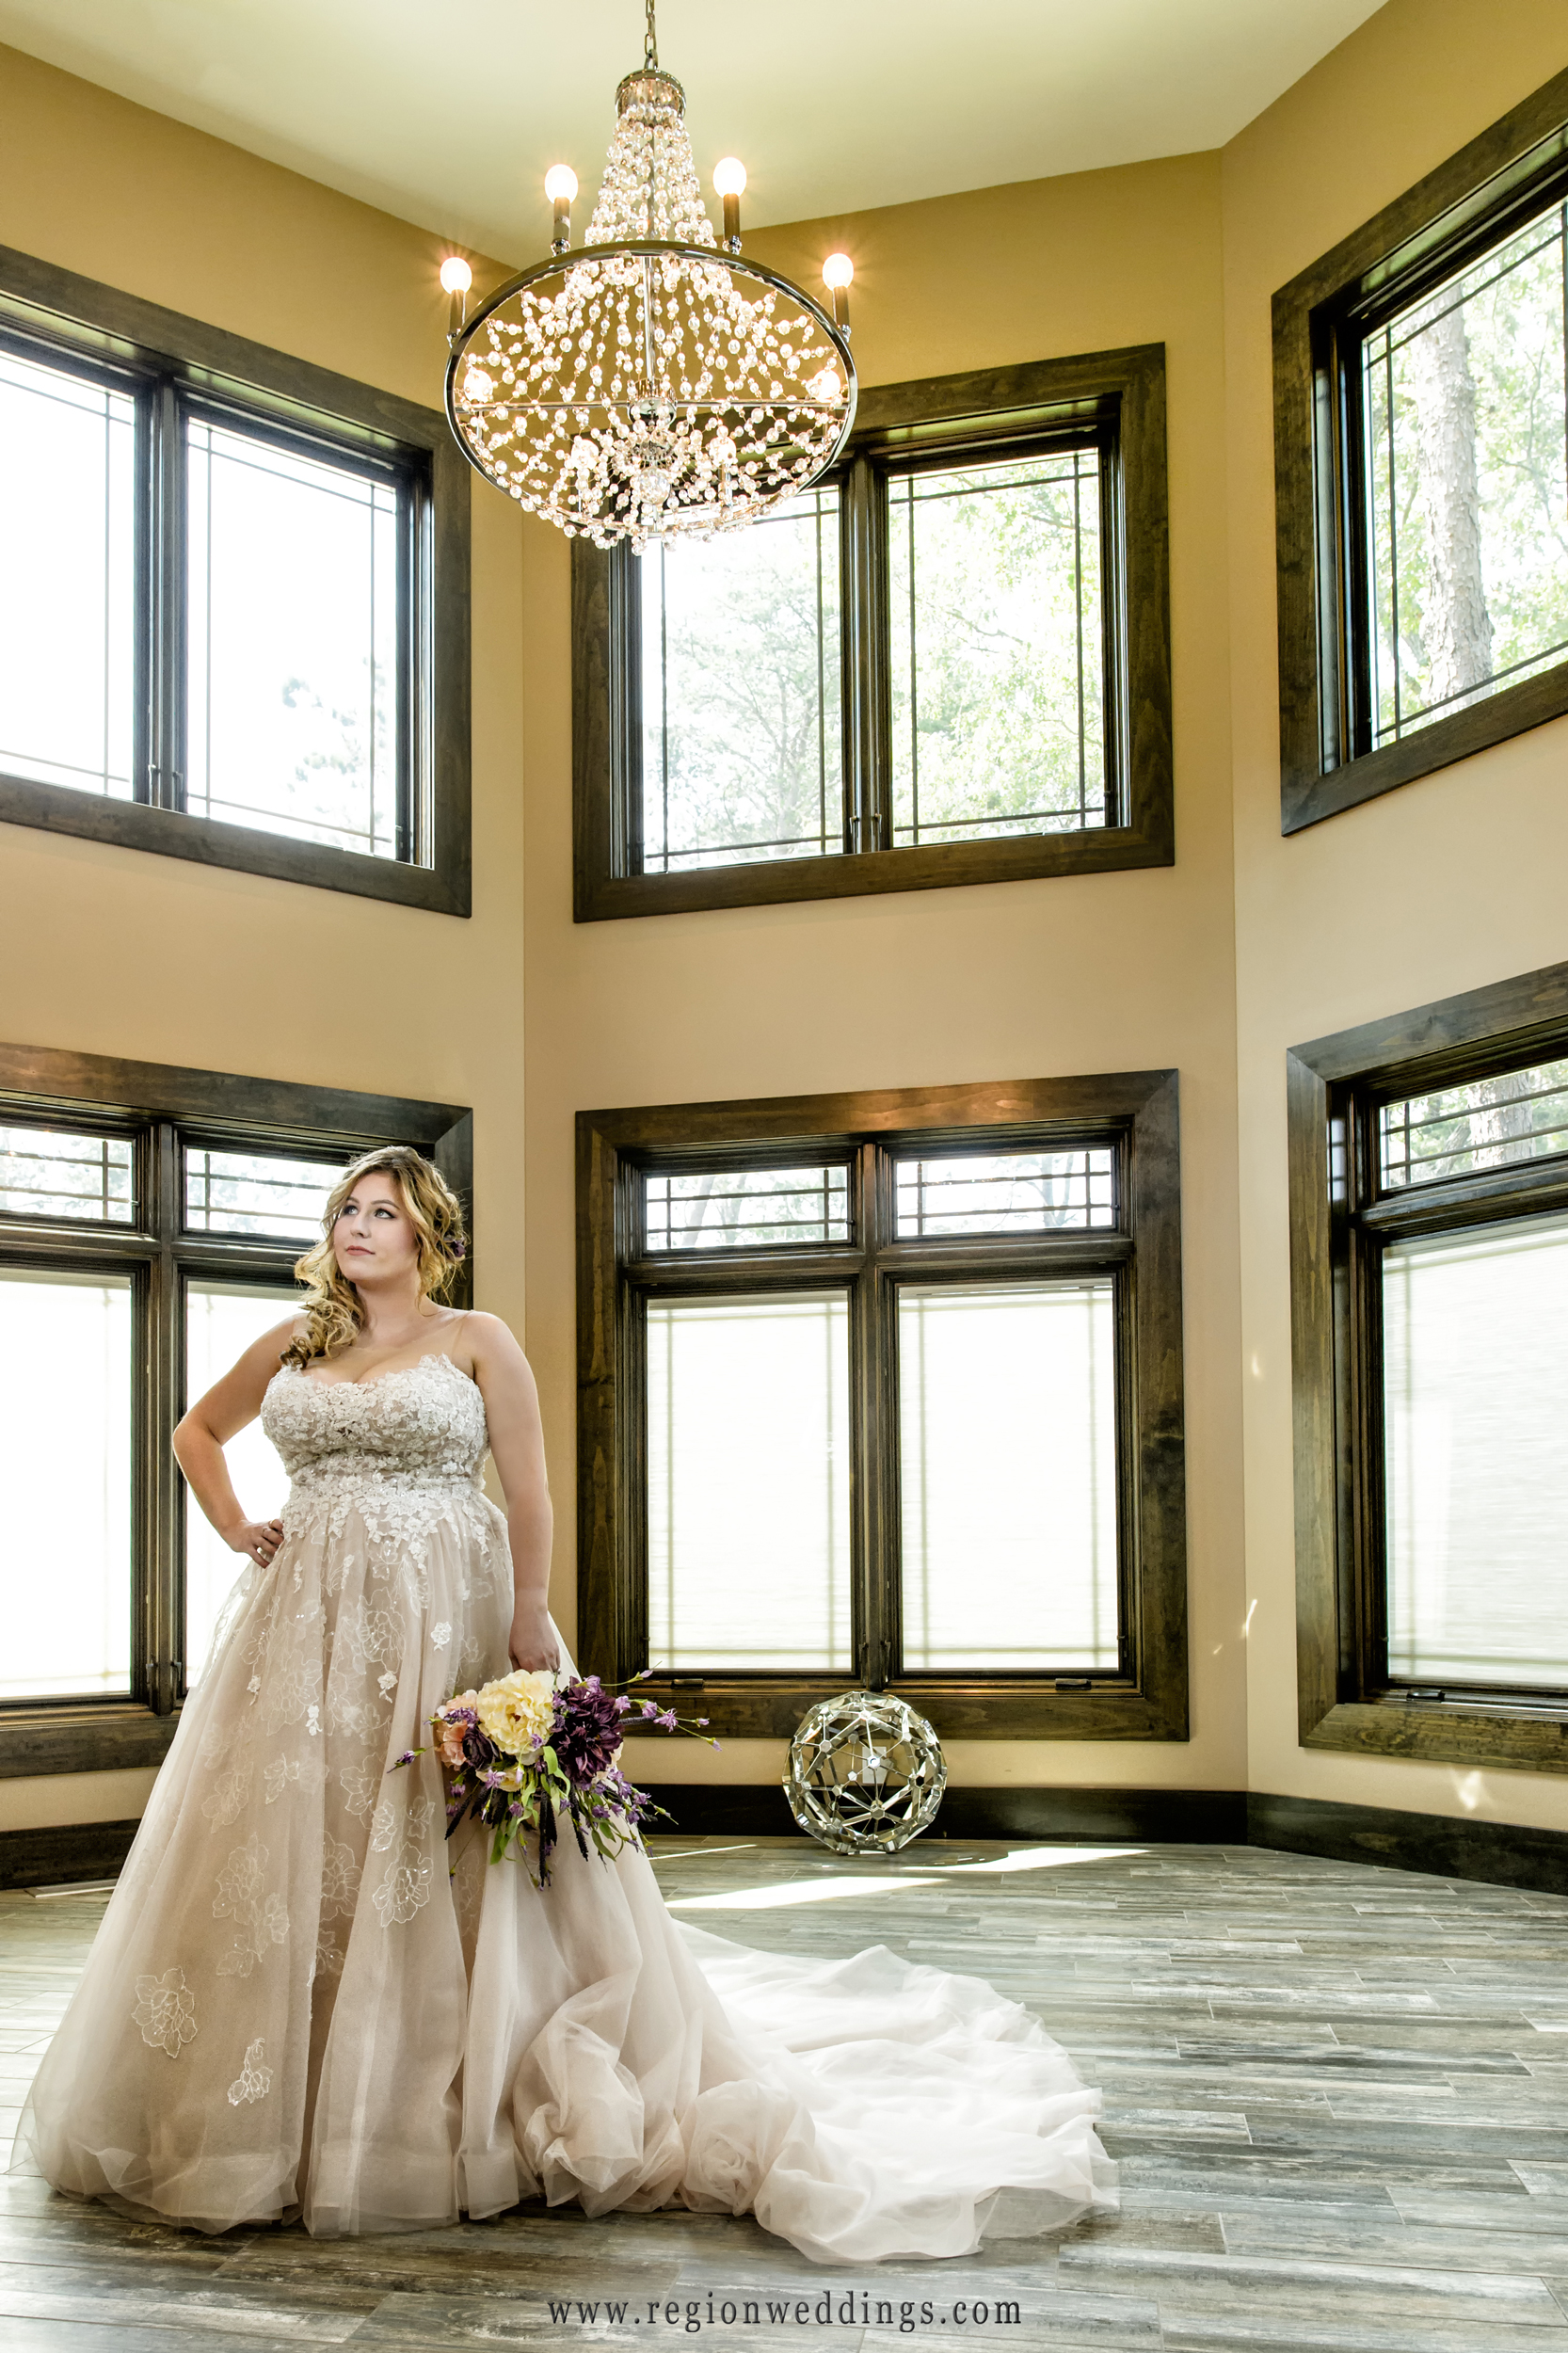 The bride in her wonderful dress at Sandy Pines bridal house.